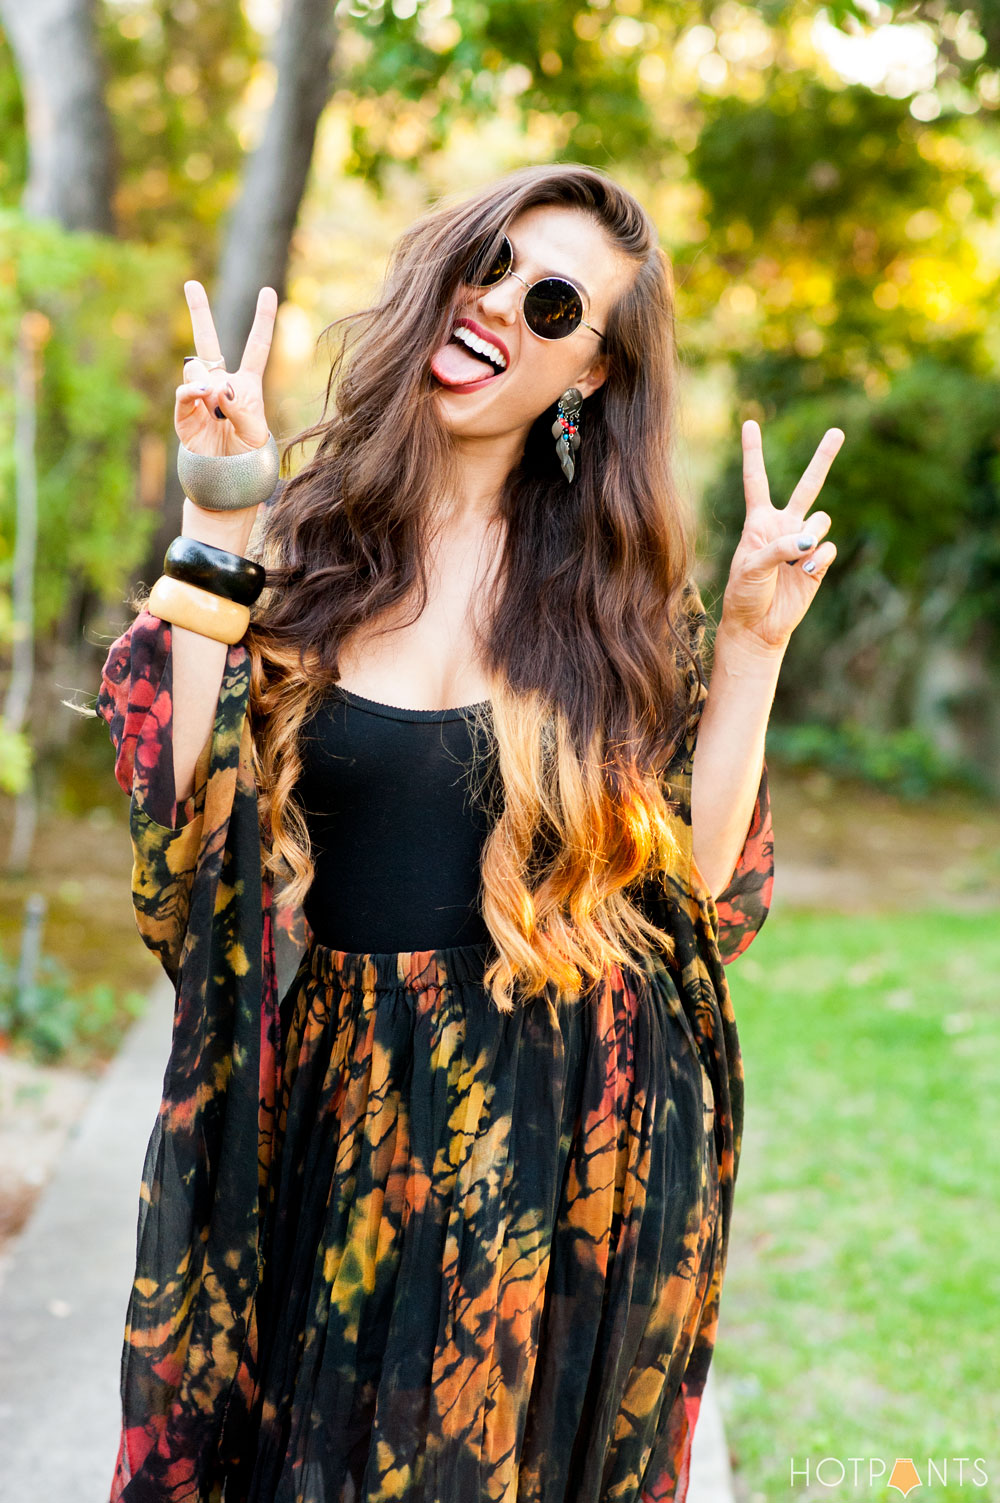 Funny Girl Long Wavy Ombre Bleached Hair John Lennon Round Sunglasses Sheer Clothes Outfit